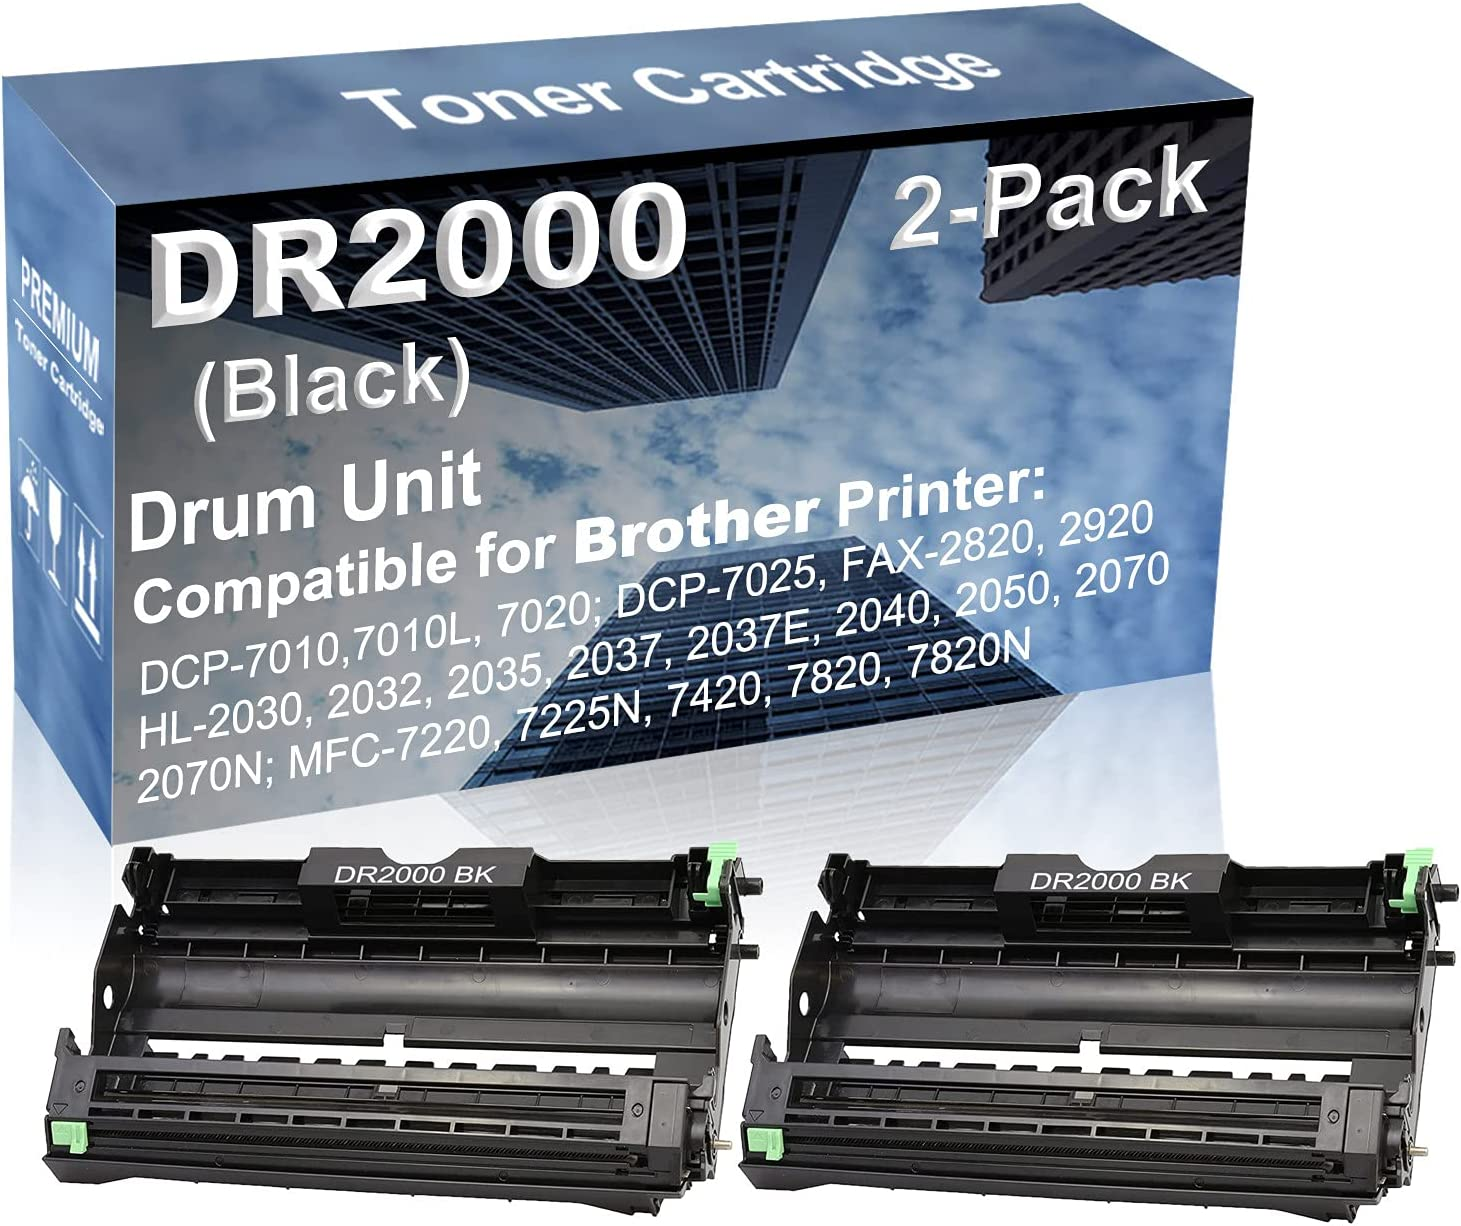 2-Pack Compatible Drum Unit (Black) Replacement for Brother DR2000 Drum Kit use for Brother HL-2070N, MFC-7220, MFC-7225N, MFC-7420, MFC-7820, MFC-7820N Printer